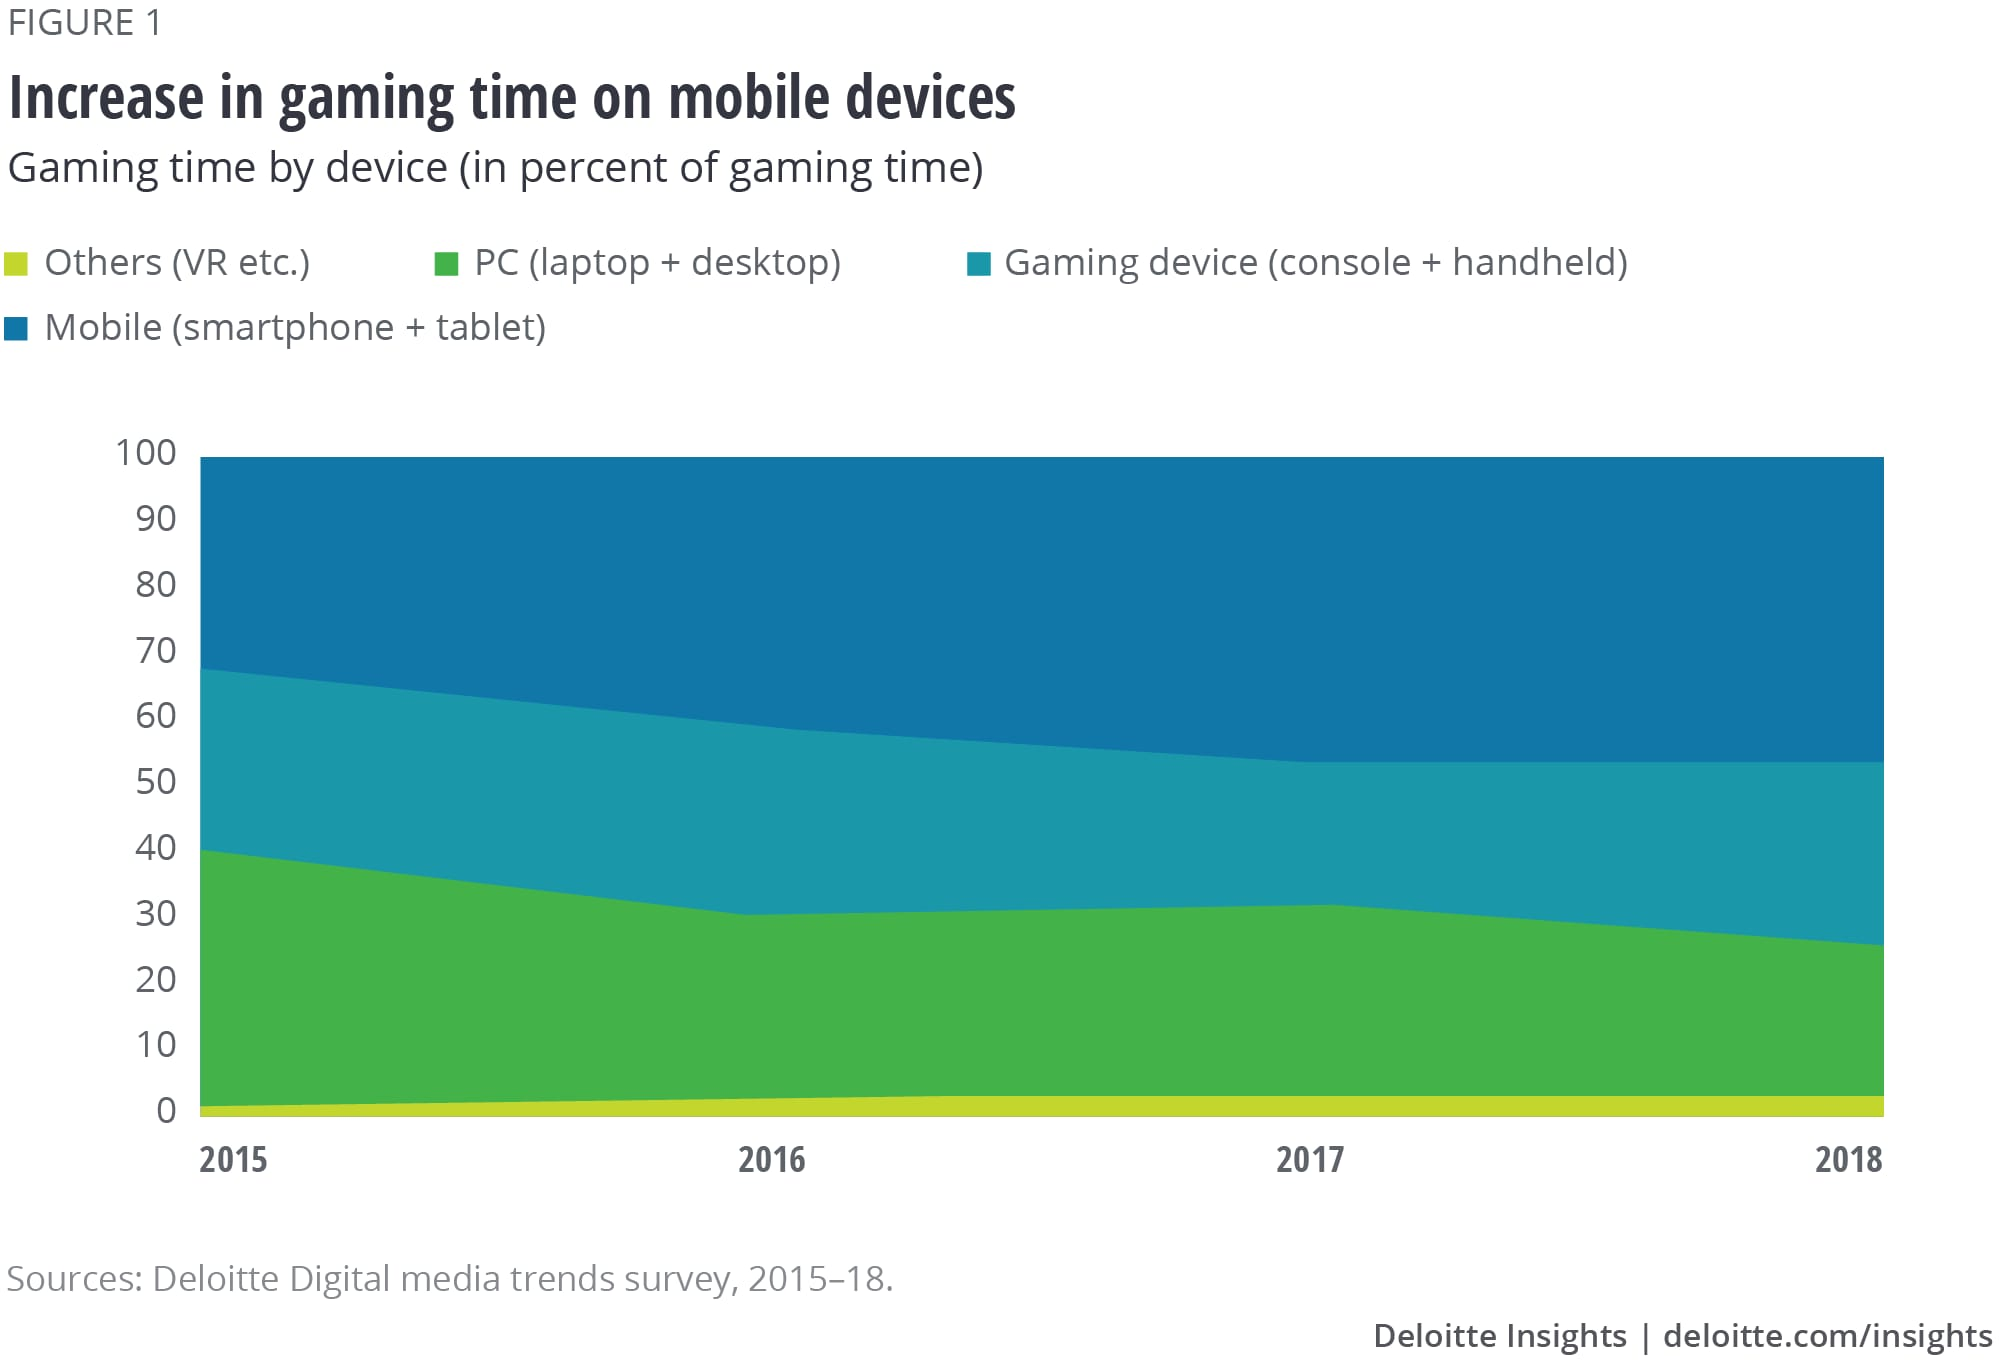 Increase in gaming time on mobile devices